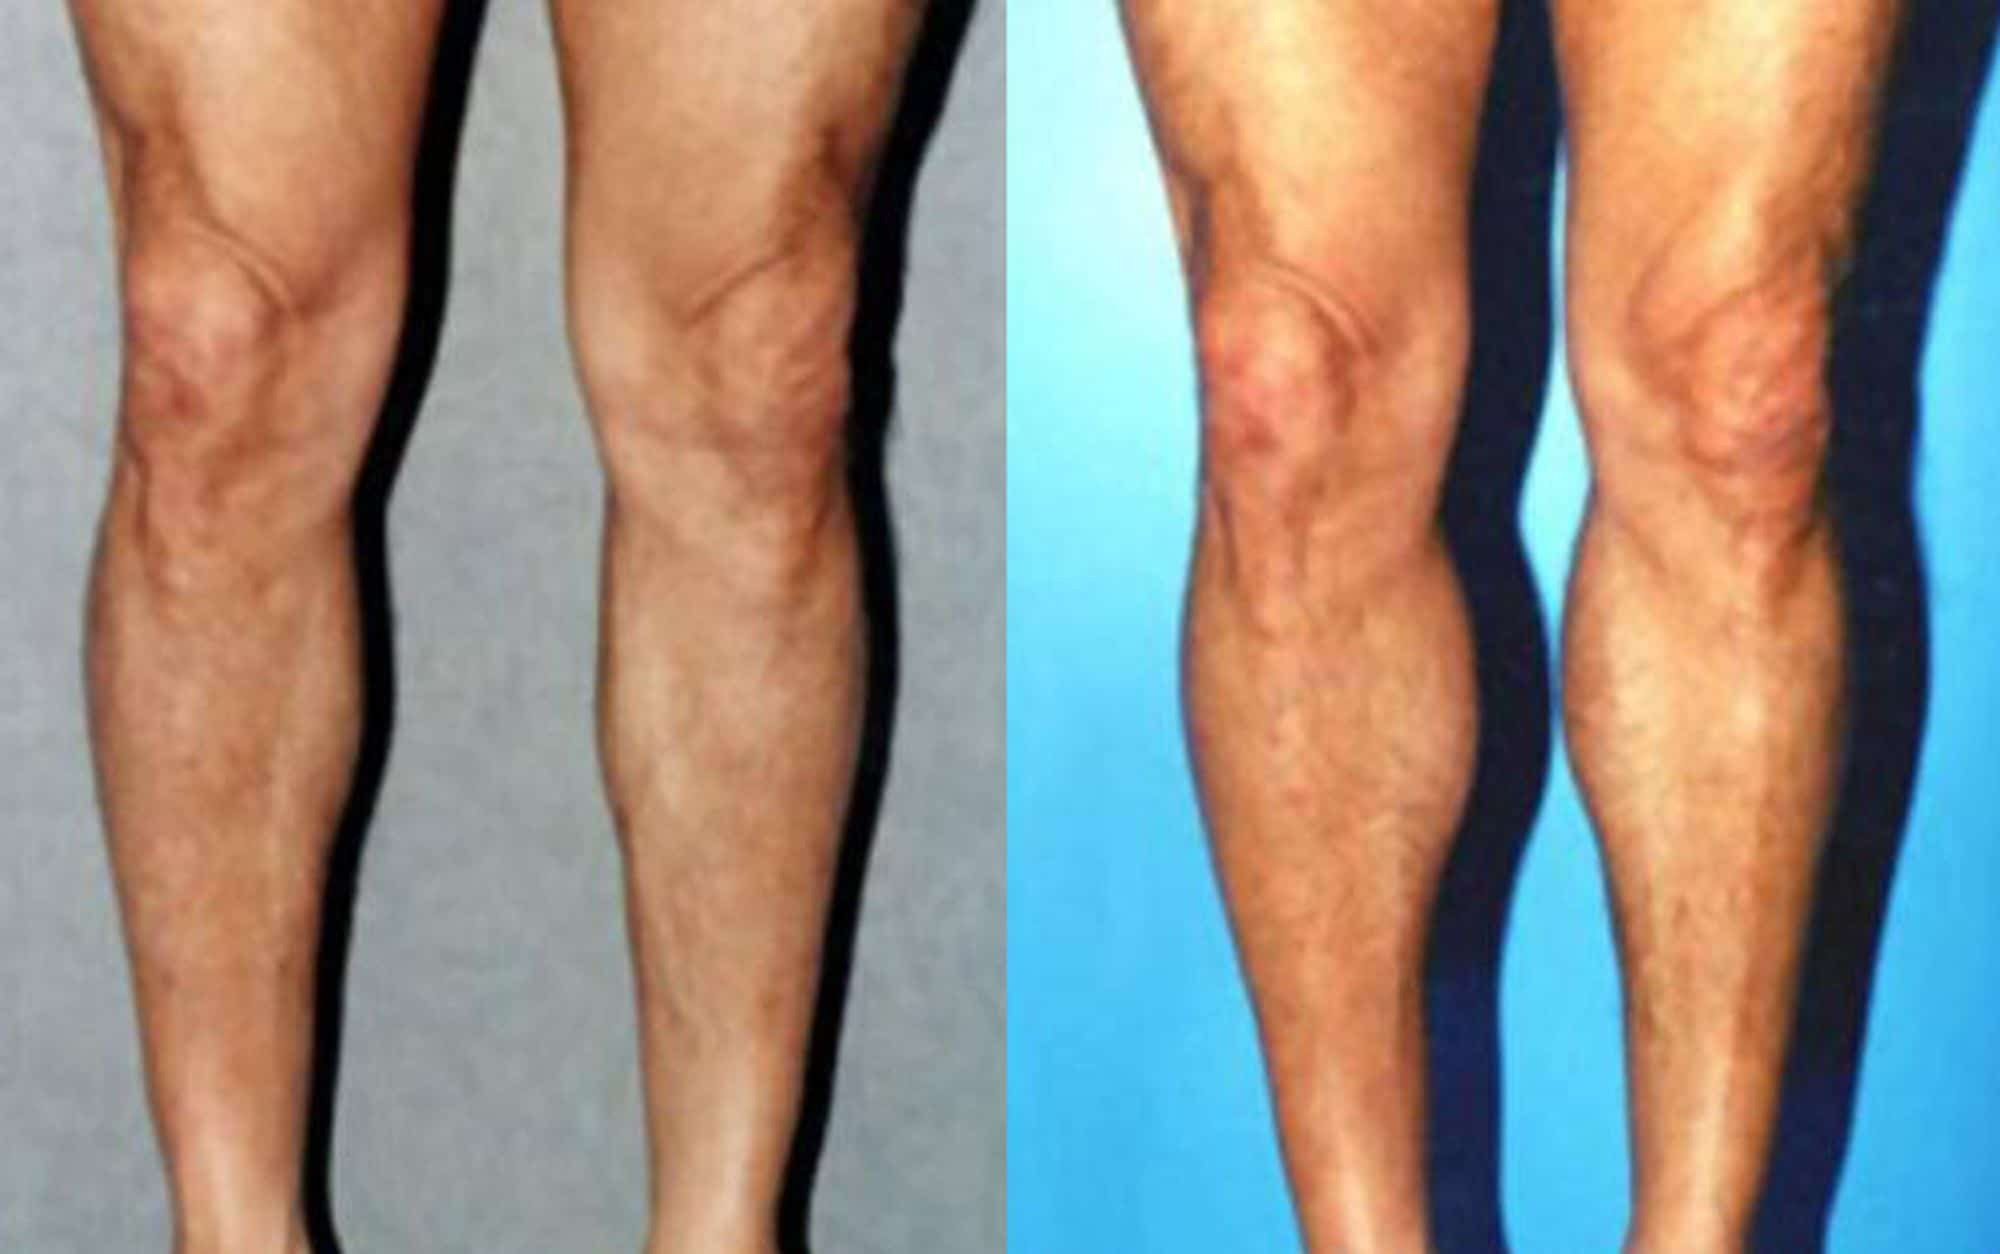 Calf muscle implants - Picture 2